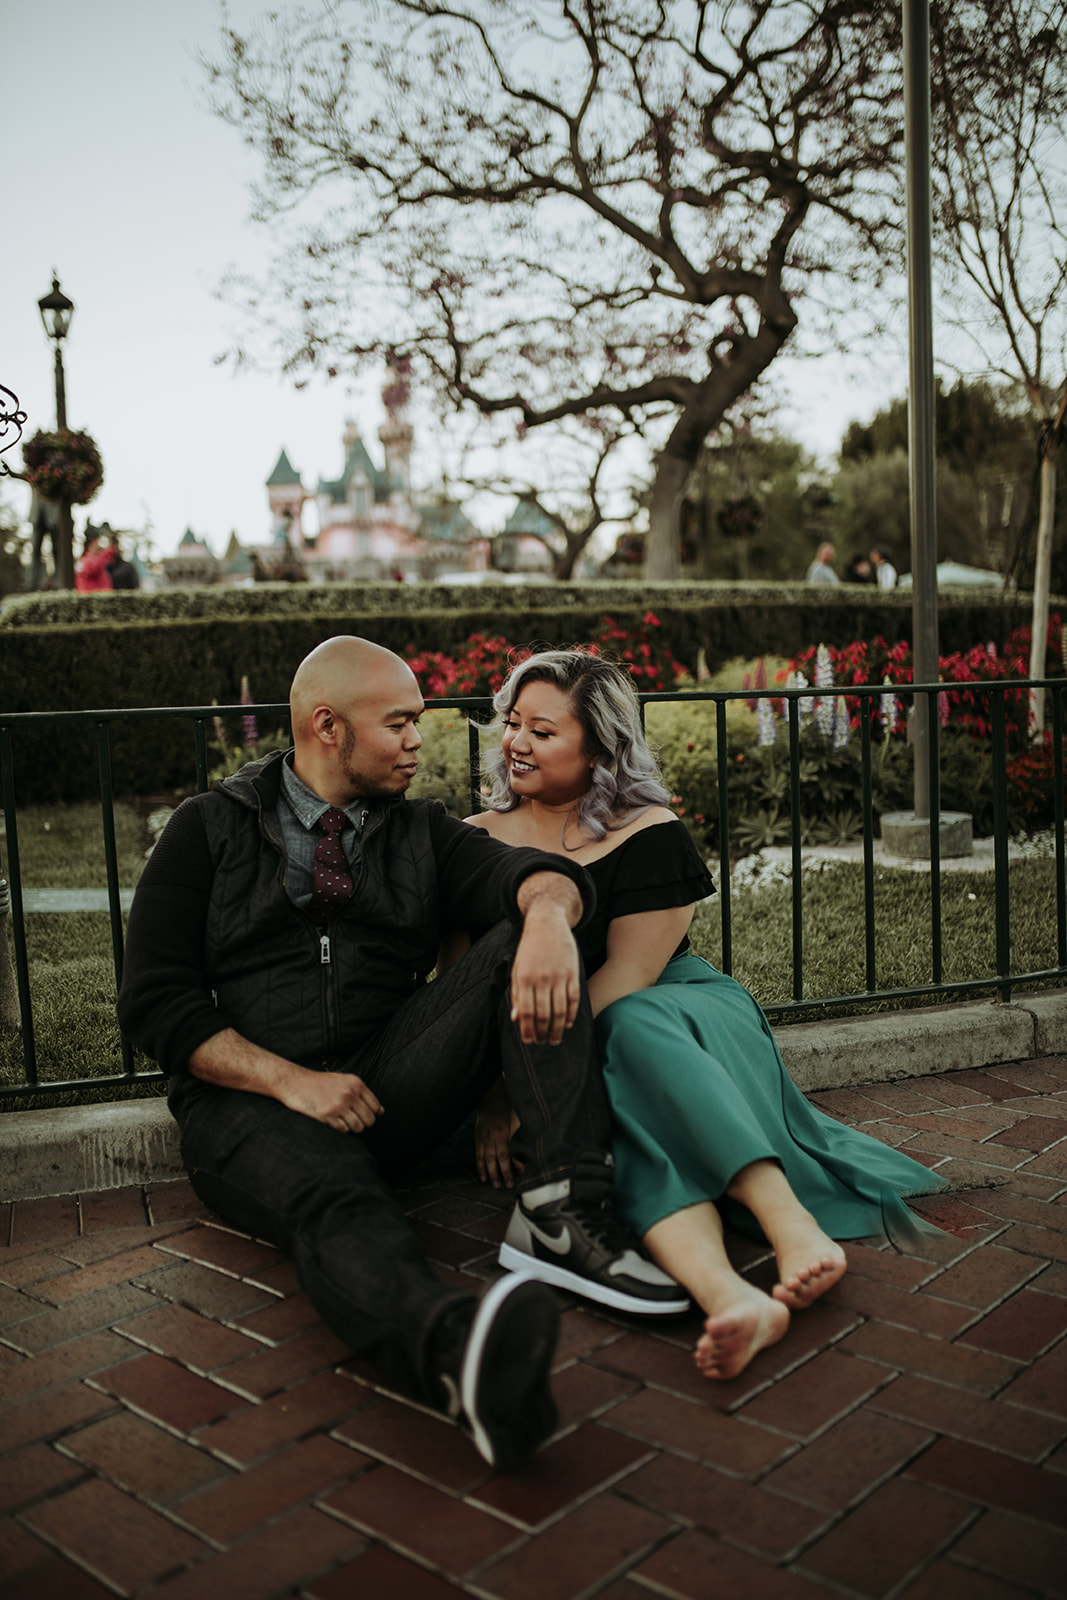 After hours of walking around Disneyland and California Adventure, we needed a break and found a nice little patch of brick to sit on.